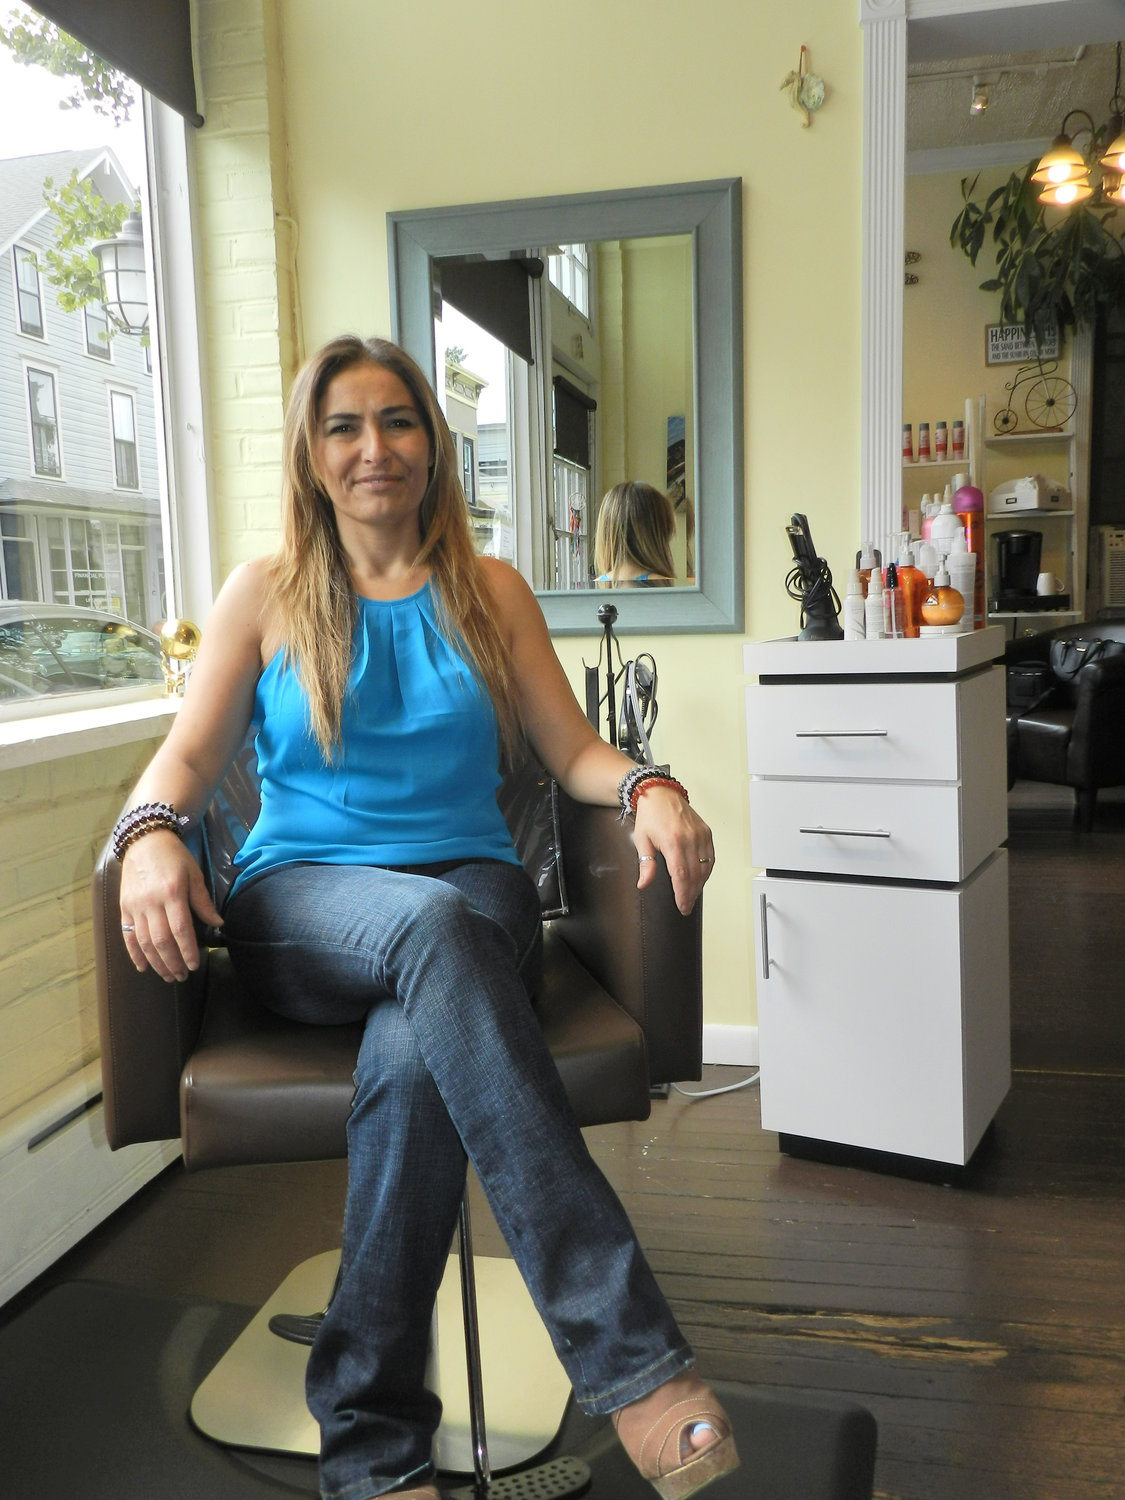 Hairdresser Graciela Bustos, who is originally from Argentina, opened Salon Solis in Sea Cliff in 2012.